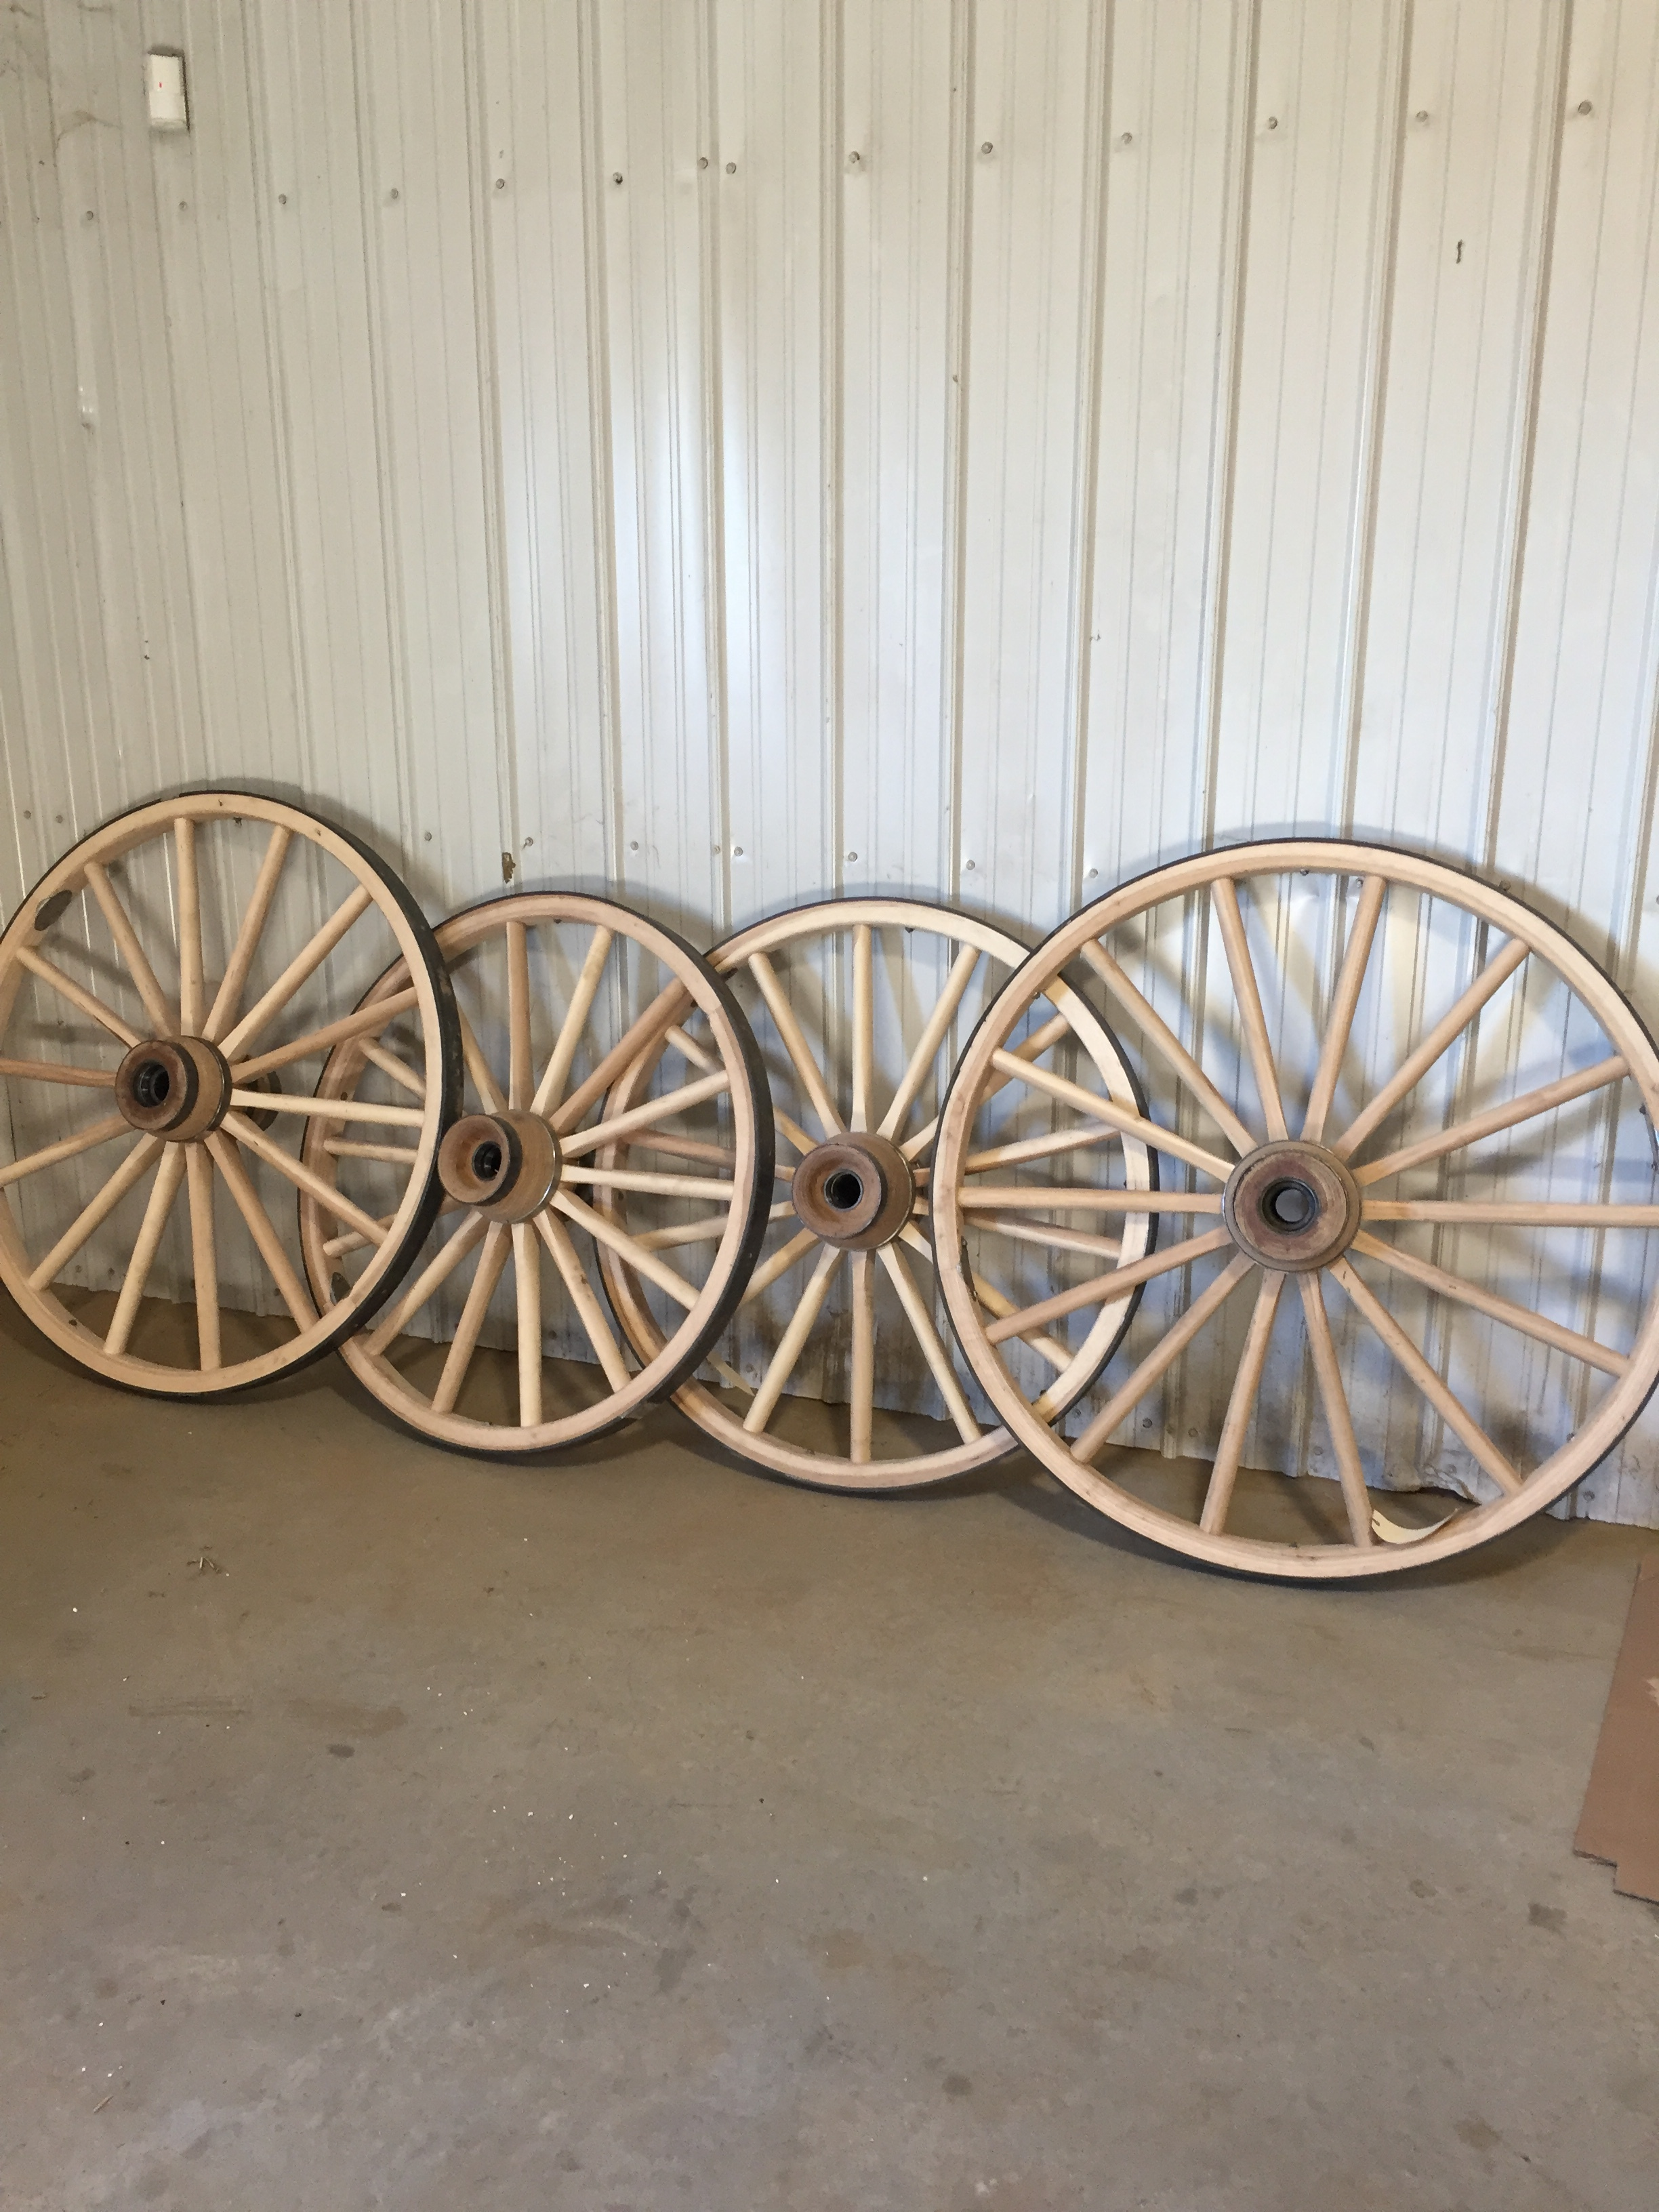 Beautiful handmade wheels, ready for the dusty trail.